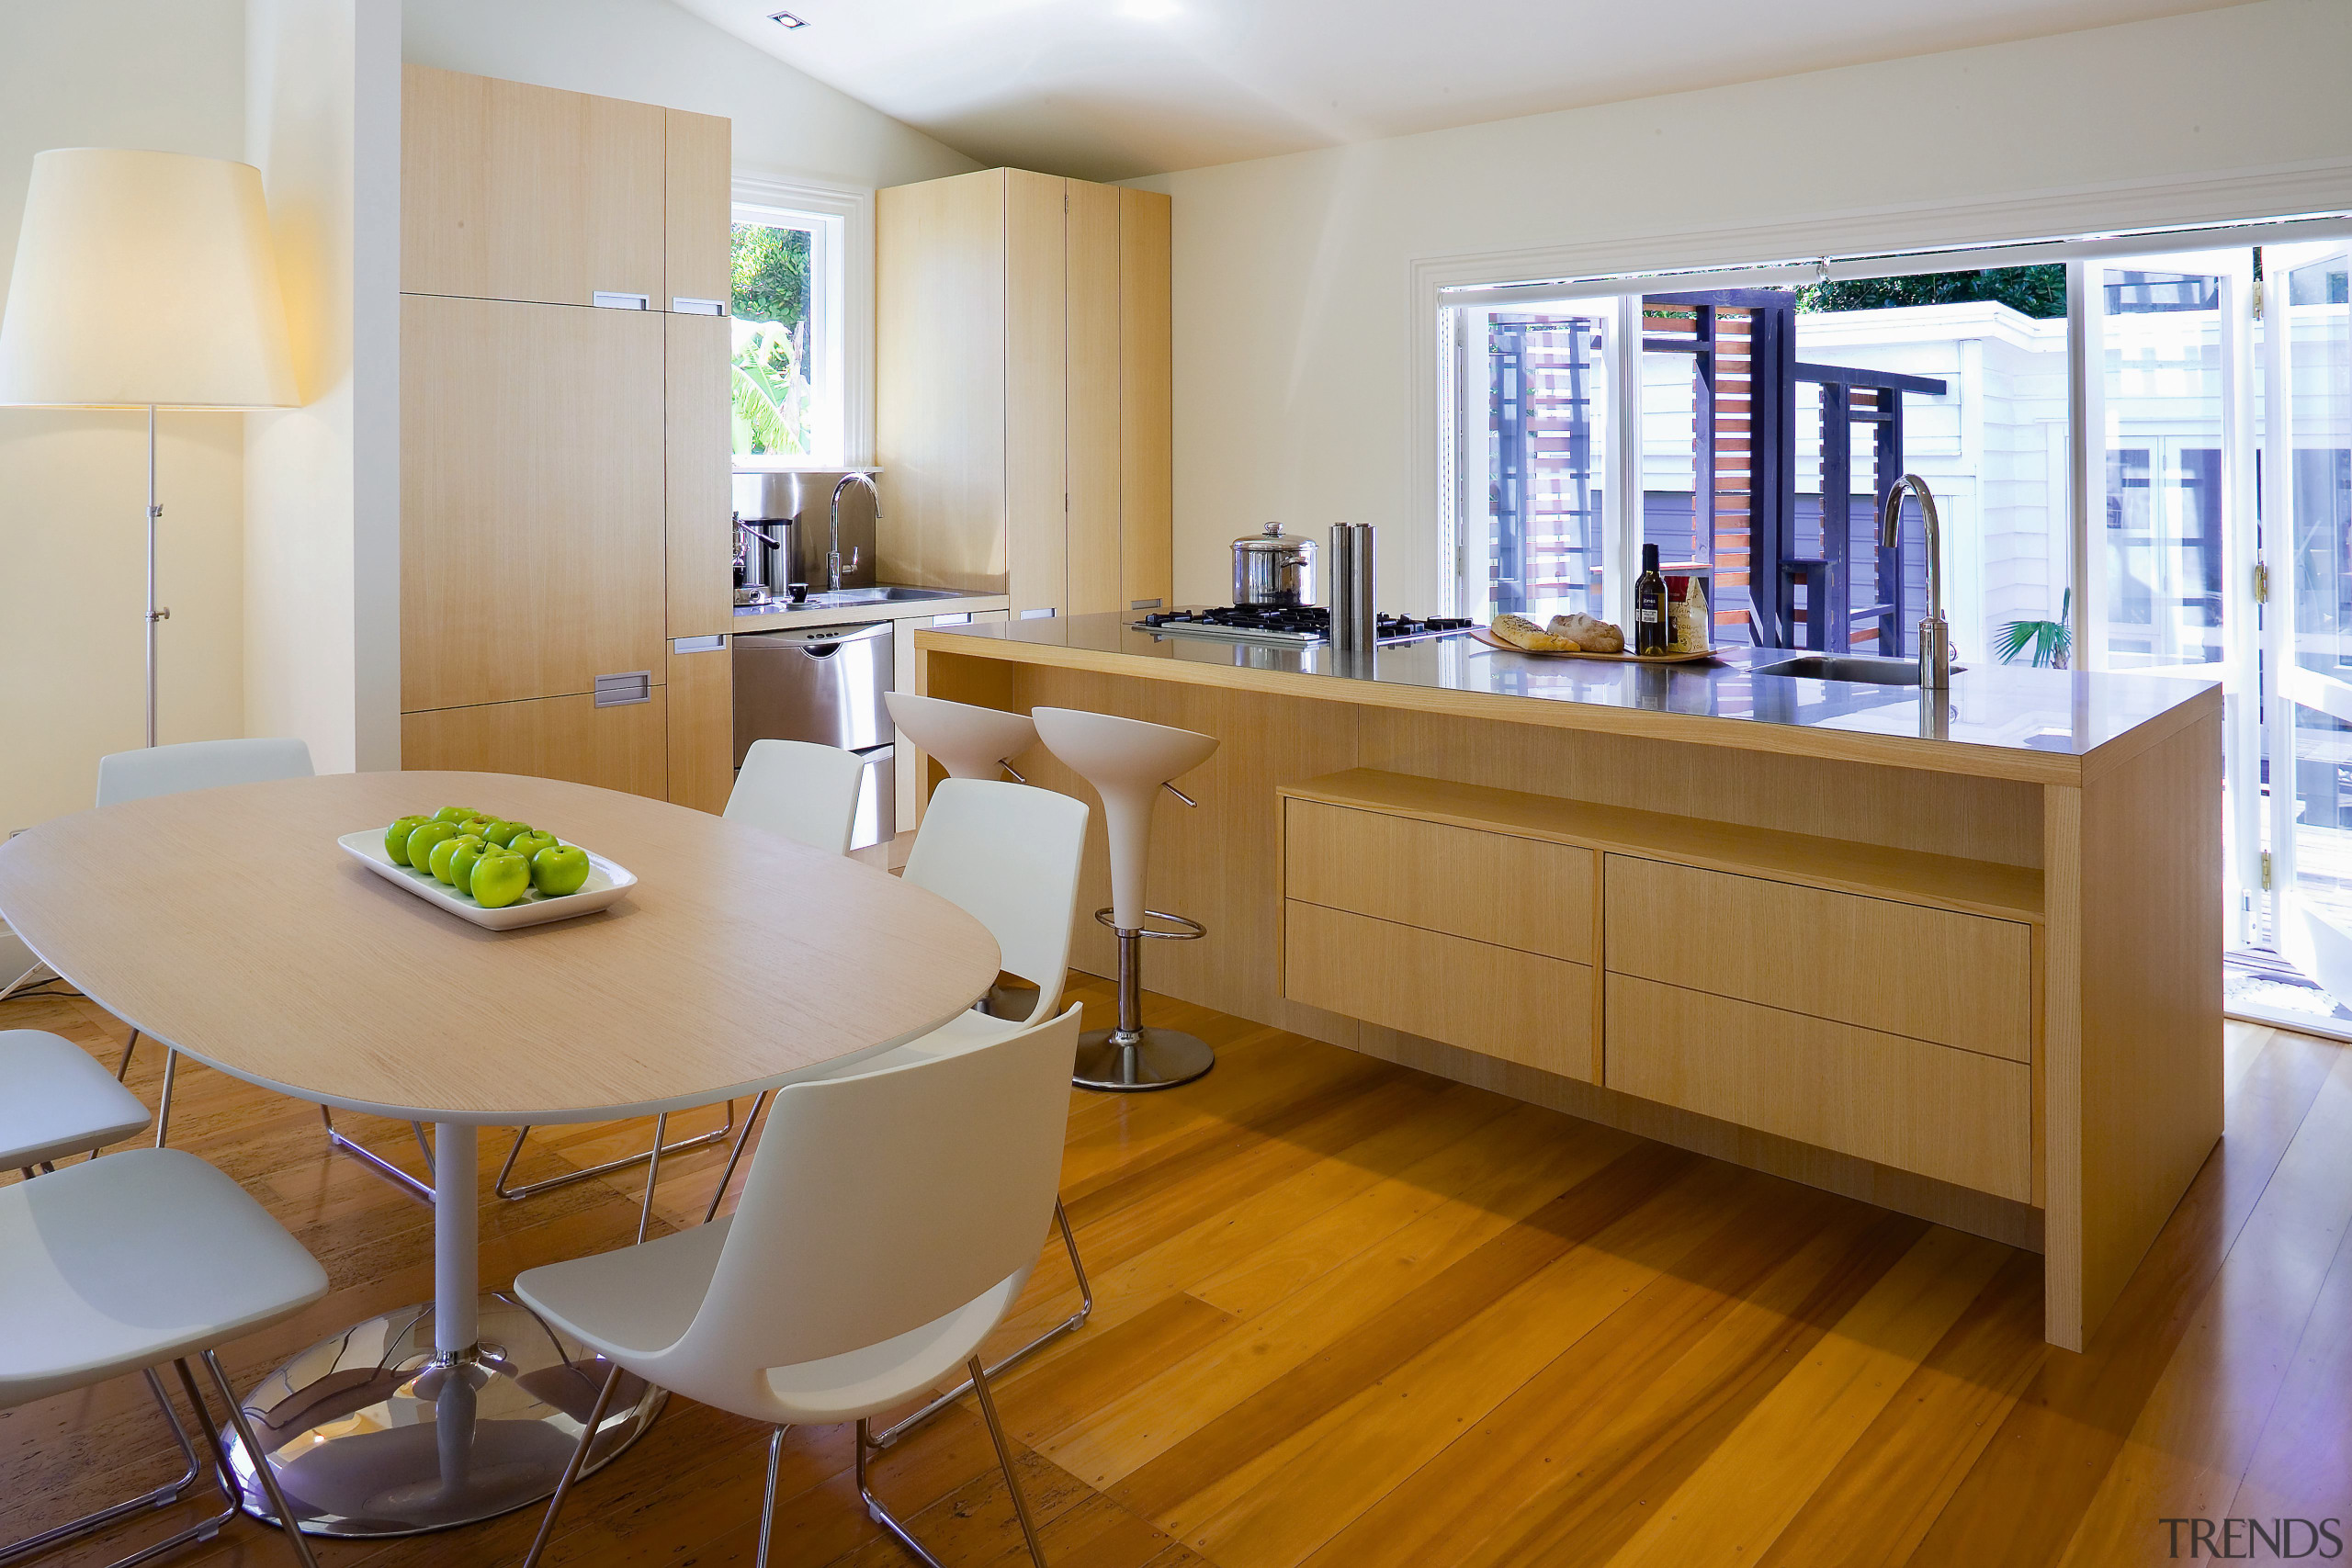 A view of the kitchen and dining areas, furniture, interior design, kitchen, real estate, room, table, brown, gray